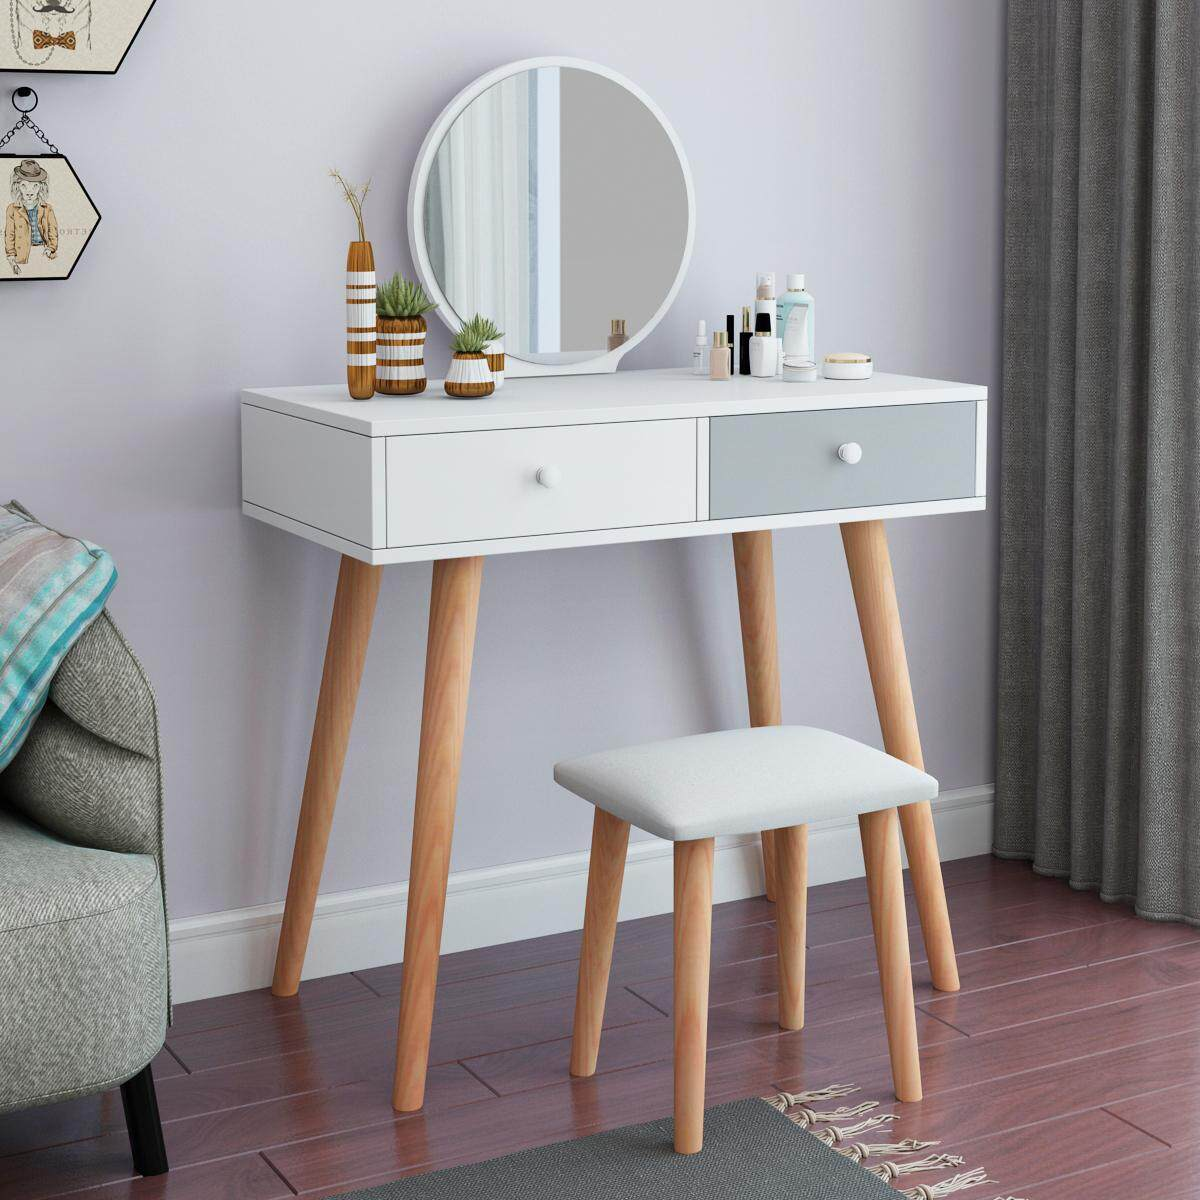 Dressing Table Solid Wood European Bedroom Dressing Table with Stool, Princess Makeup Cabinet Luxury flip Small Dressing Table. Doubel Drawer